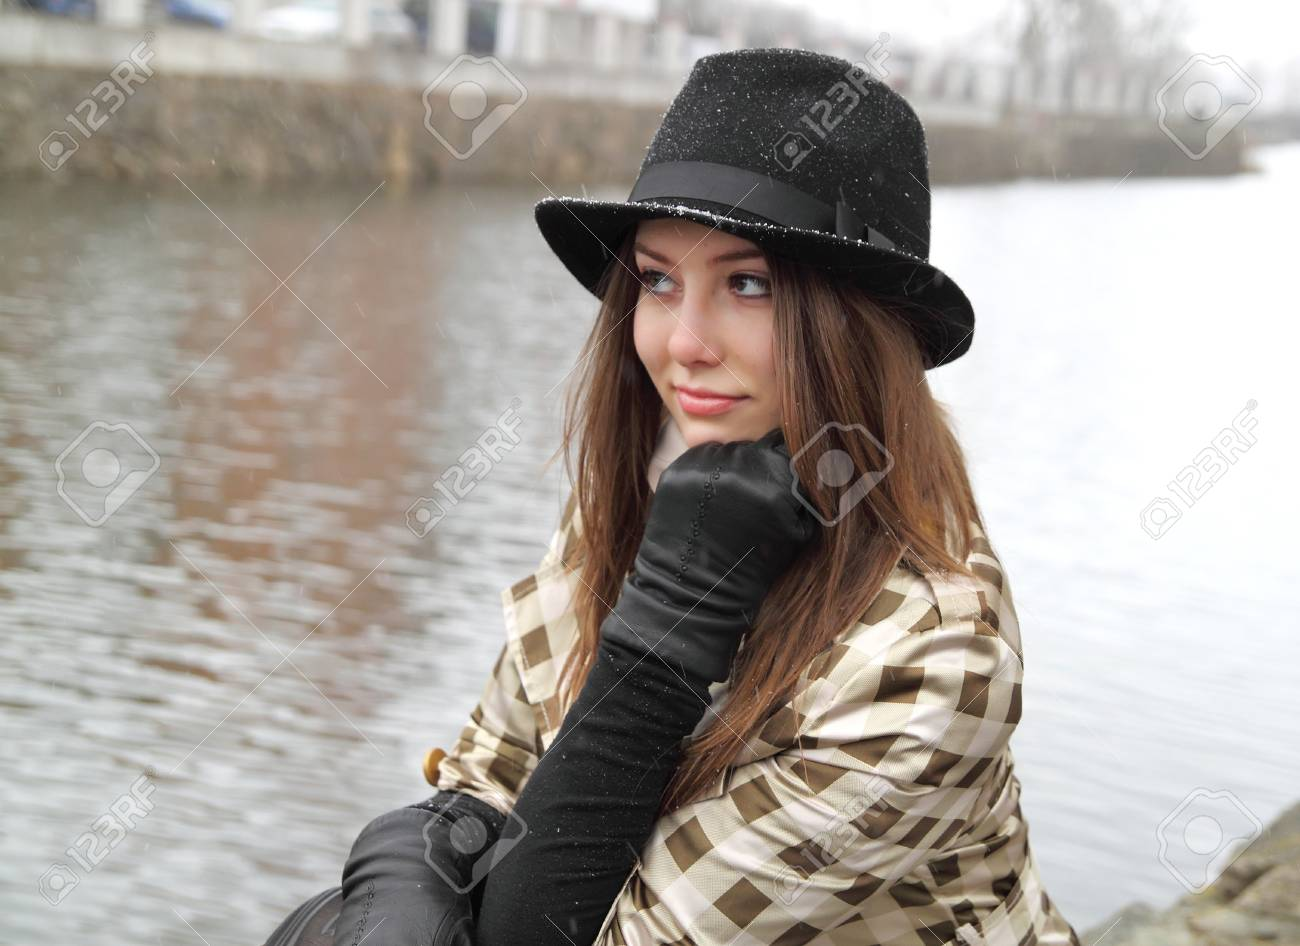 b6f8cc085f8 Woman in hat thinking in cold raining weather Stock Photo - 37859407